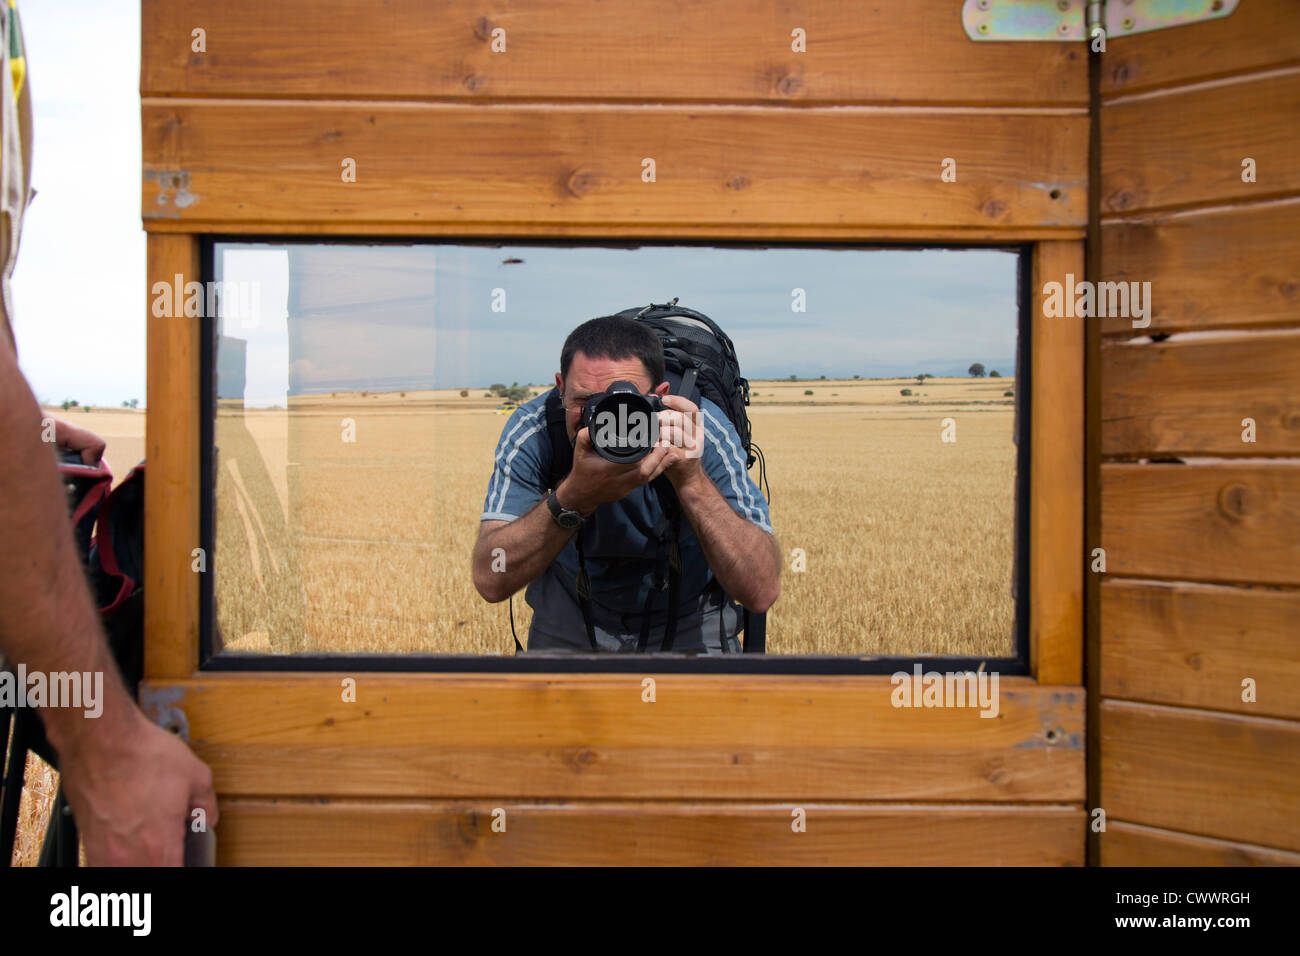 Bird Hide; Photo Logistics; mirrored glass; Spain; summer - Stock Image